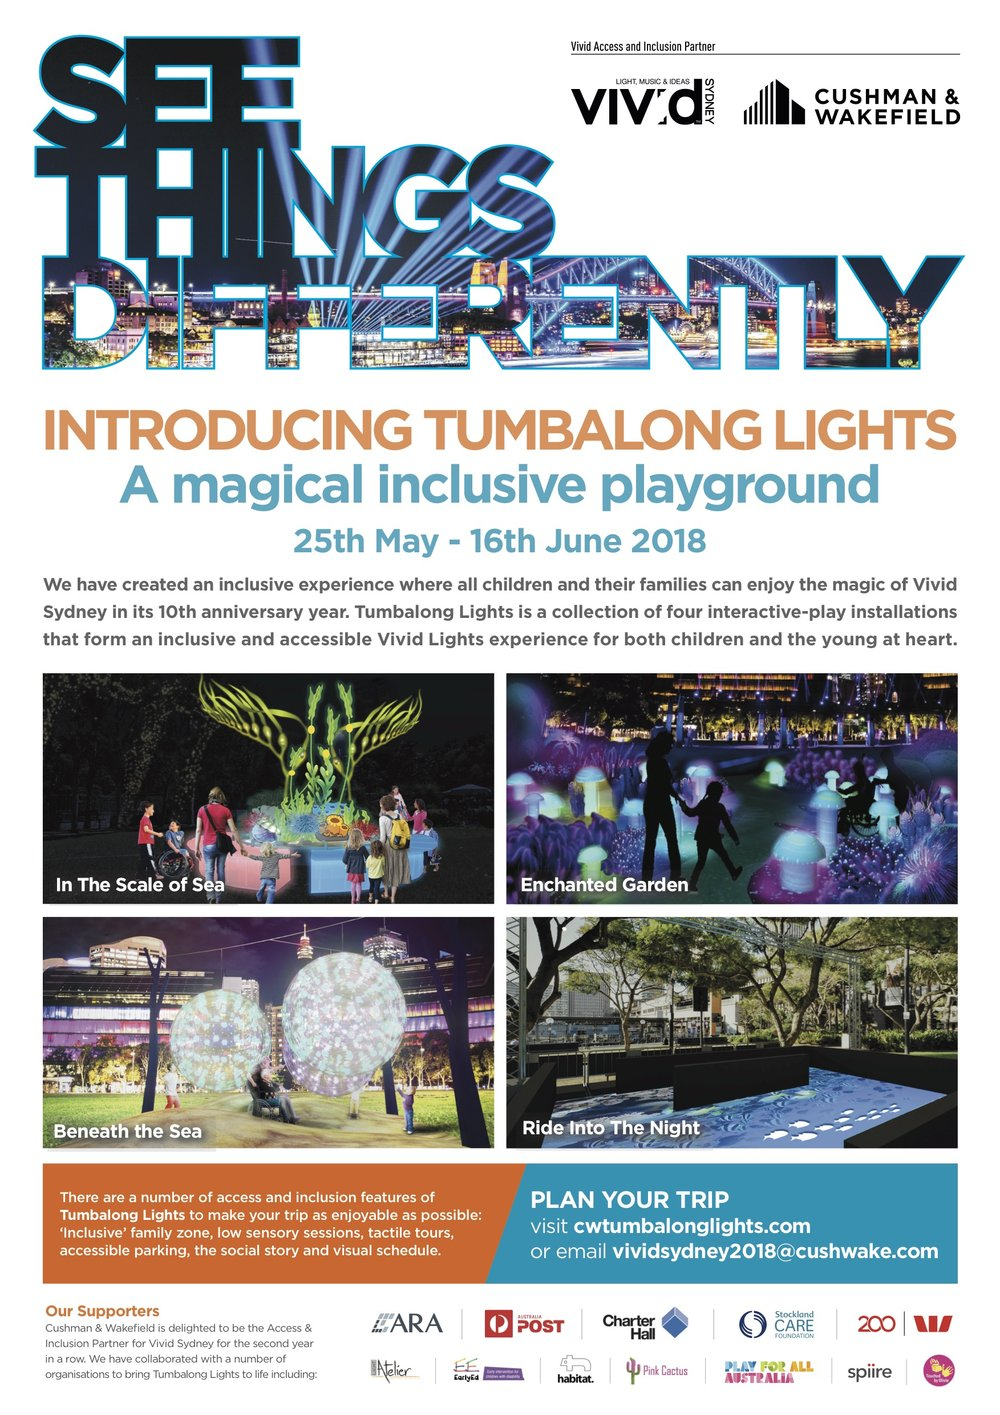 Tumbalong Lights 2018 by Cushman & Wakefield